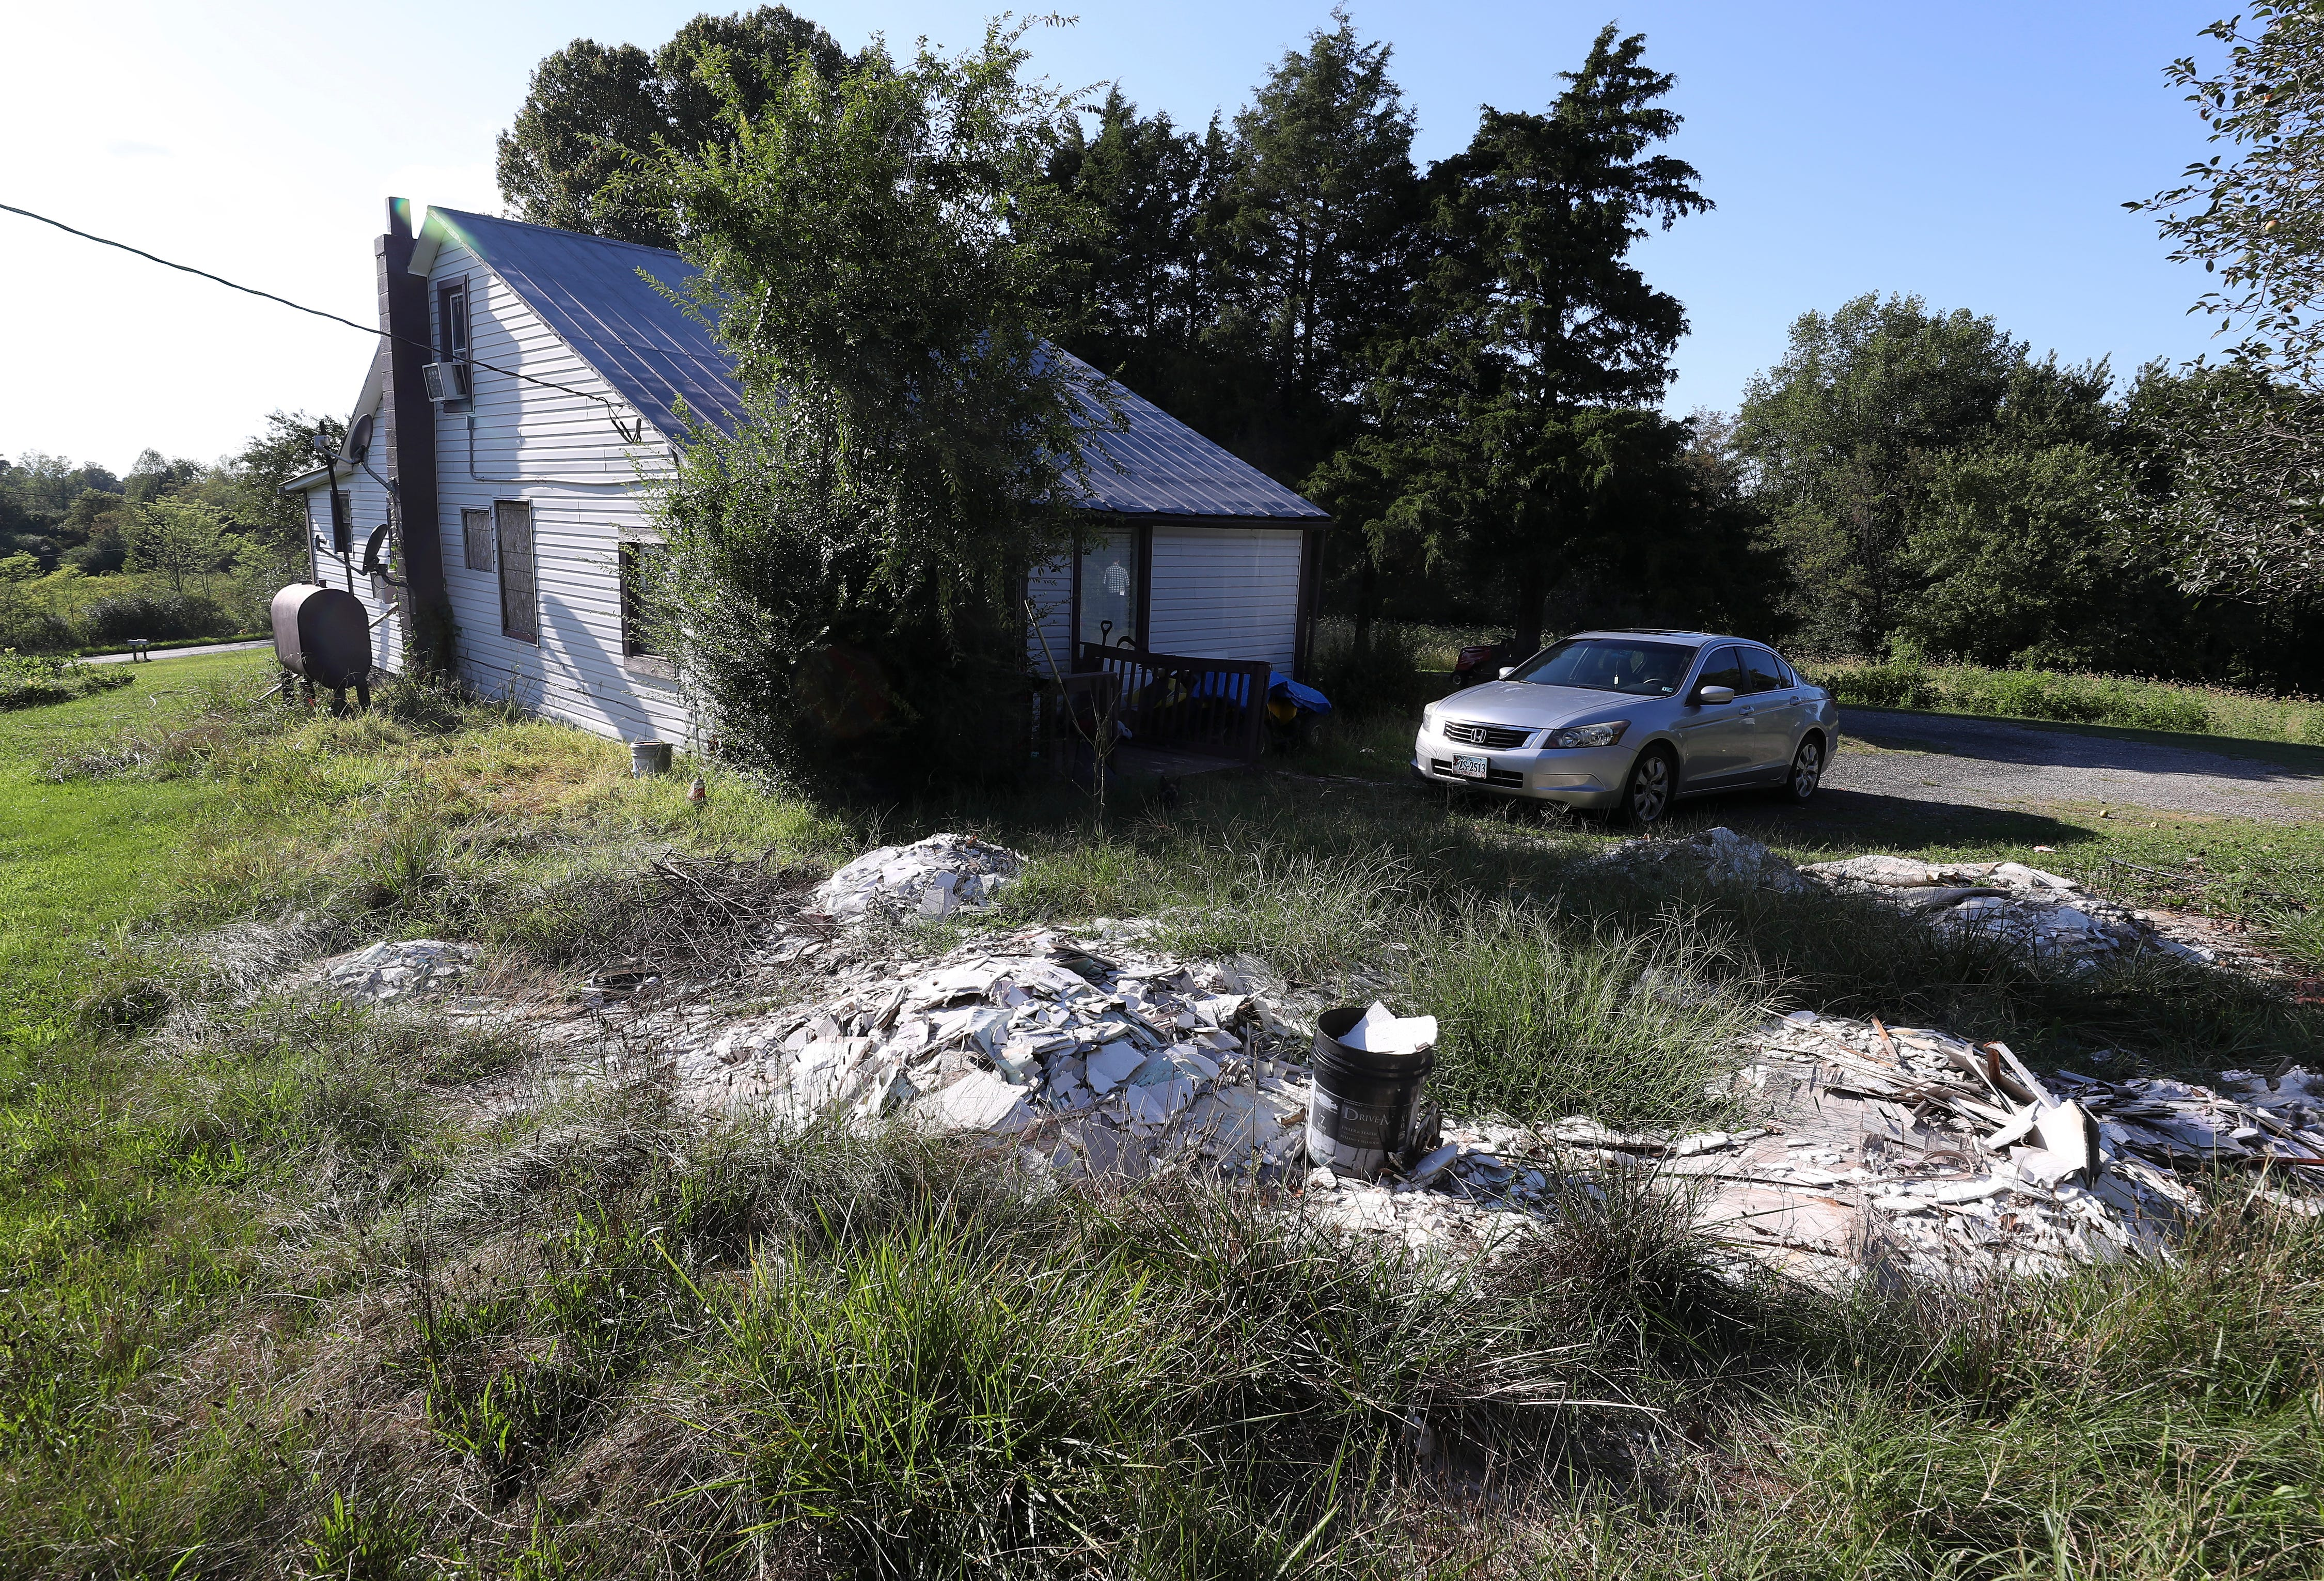 Part of a property in Axton, Virginia, that was identified in court papers as being related to an investigation of a cartel drug case. The remnants of damaged drywall is piled up in the backyard after new residents moved in.